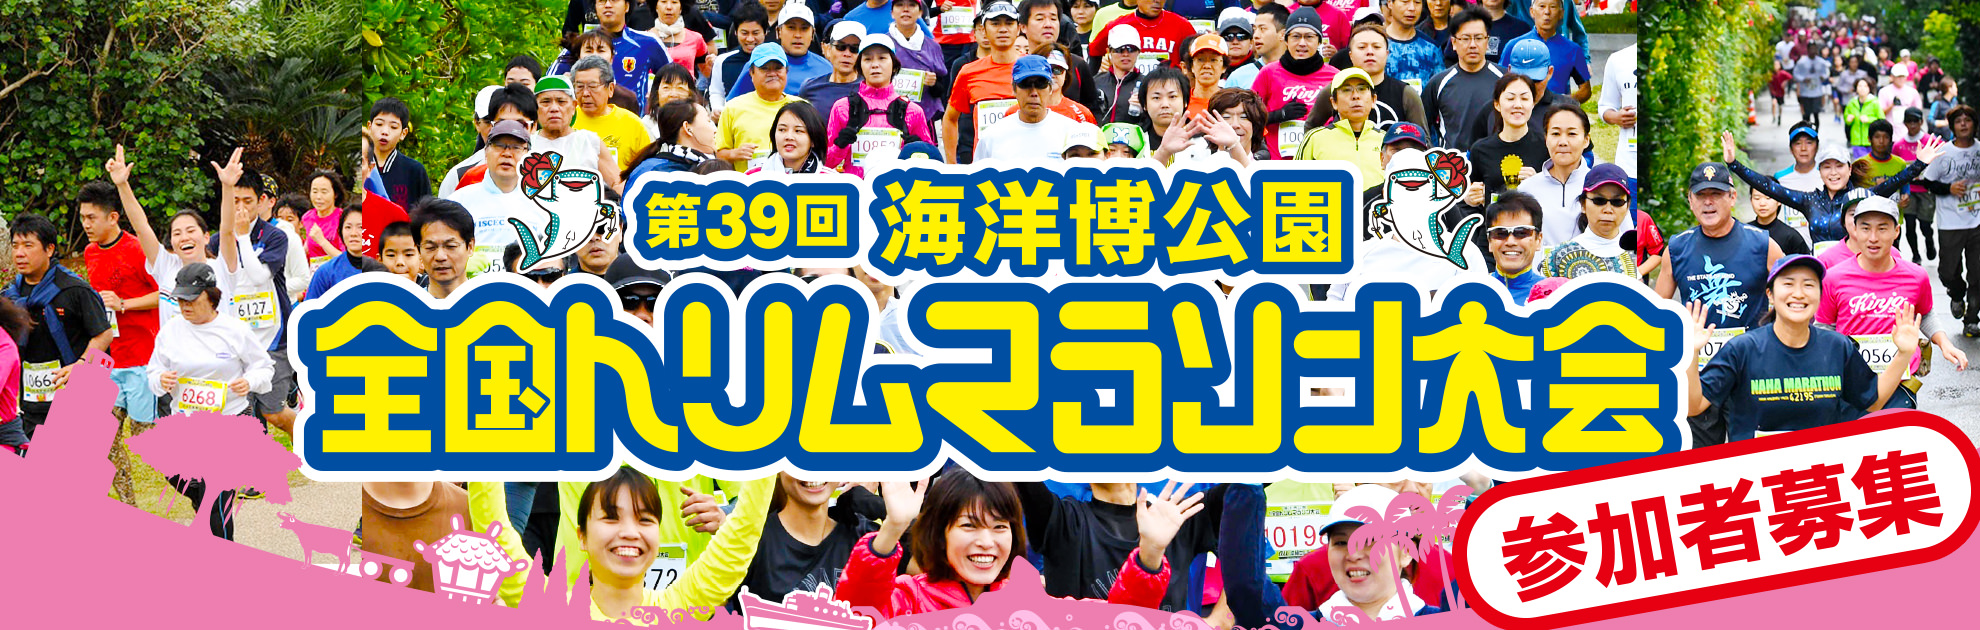 Recruitment of the 39th Ocean Expo Park whole country trim marathon conventionalists!